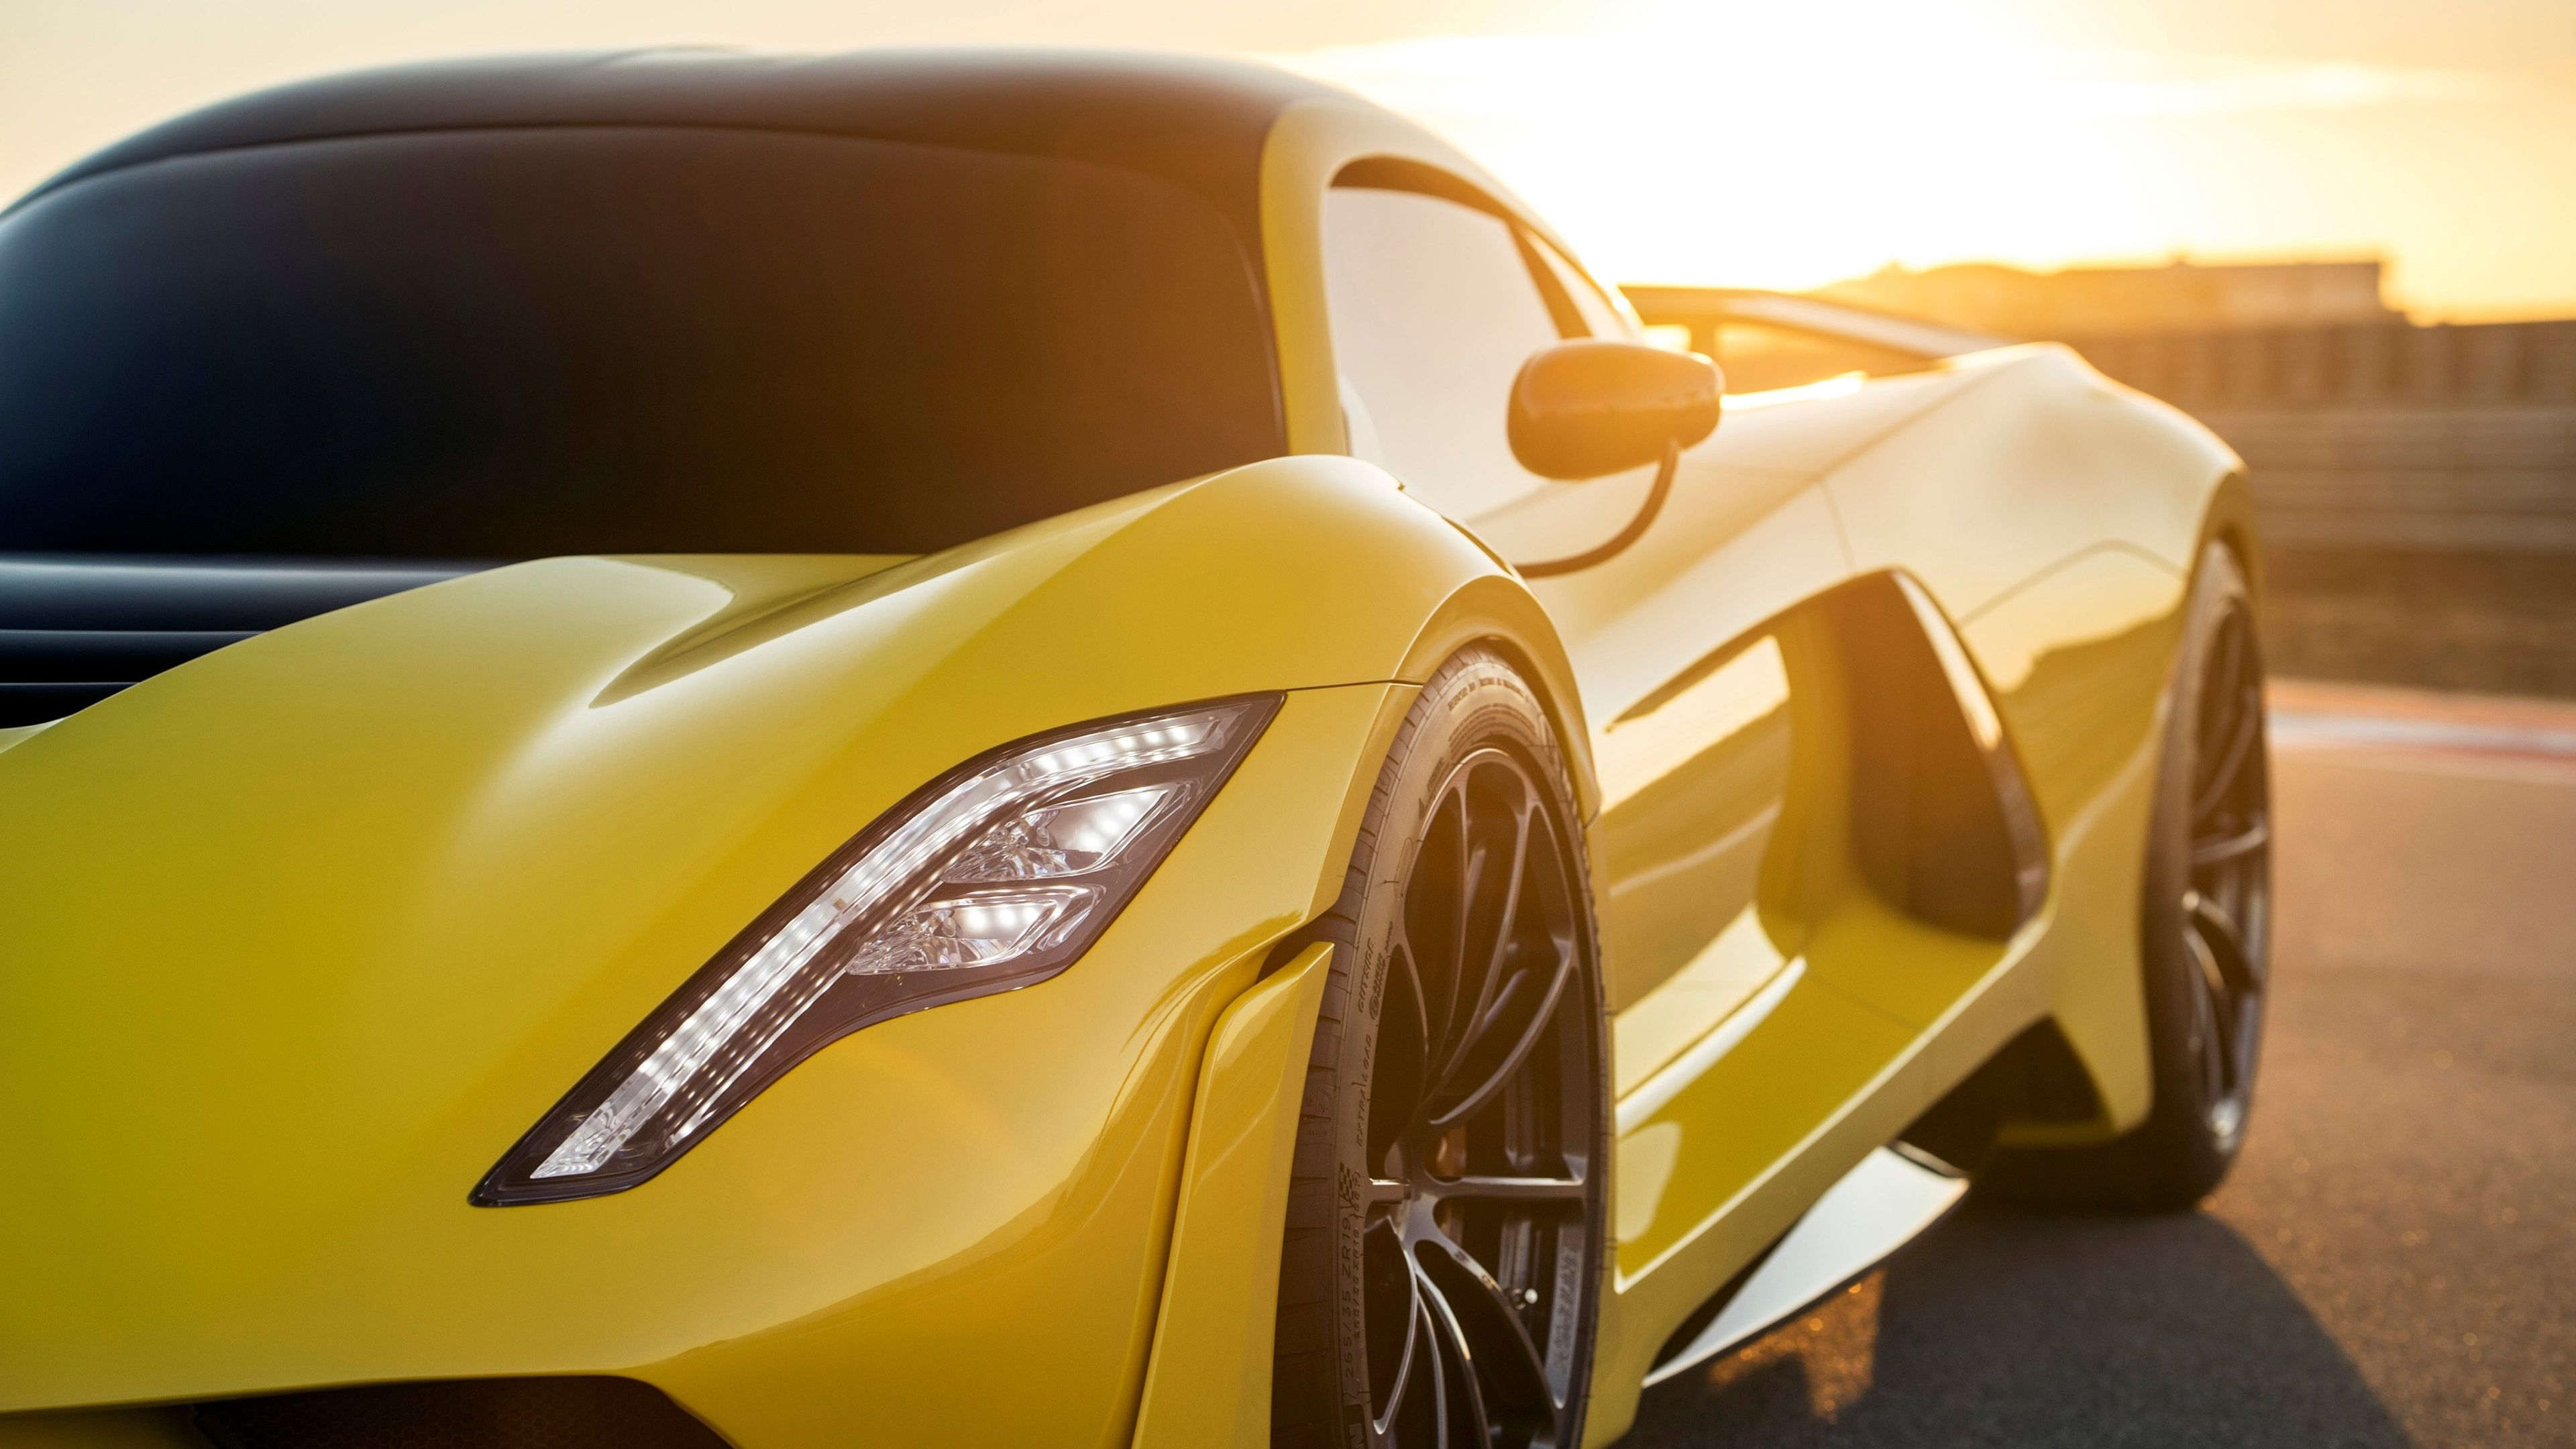 3840x2160 Hennessey Venom F5 4k Wallpaper For Free Download For Pc